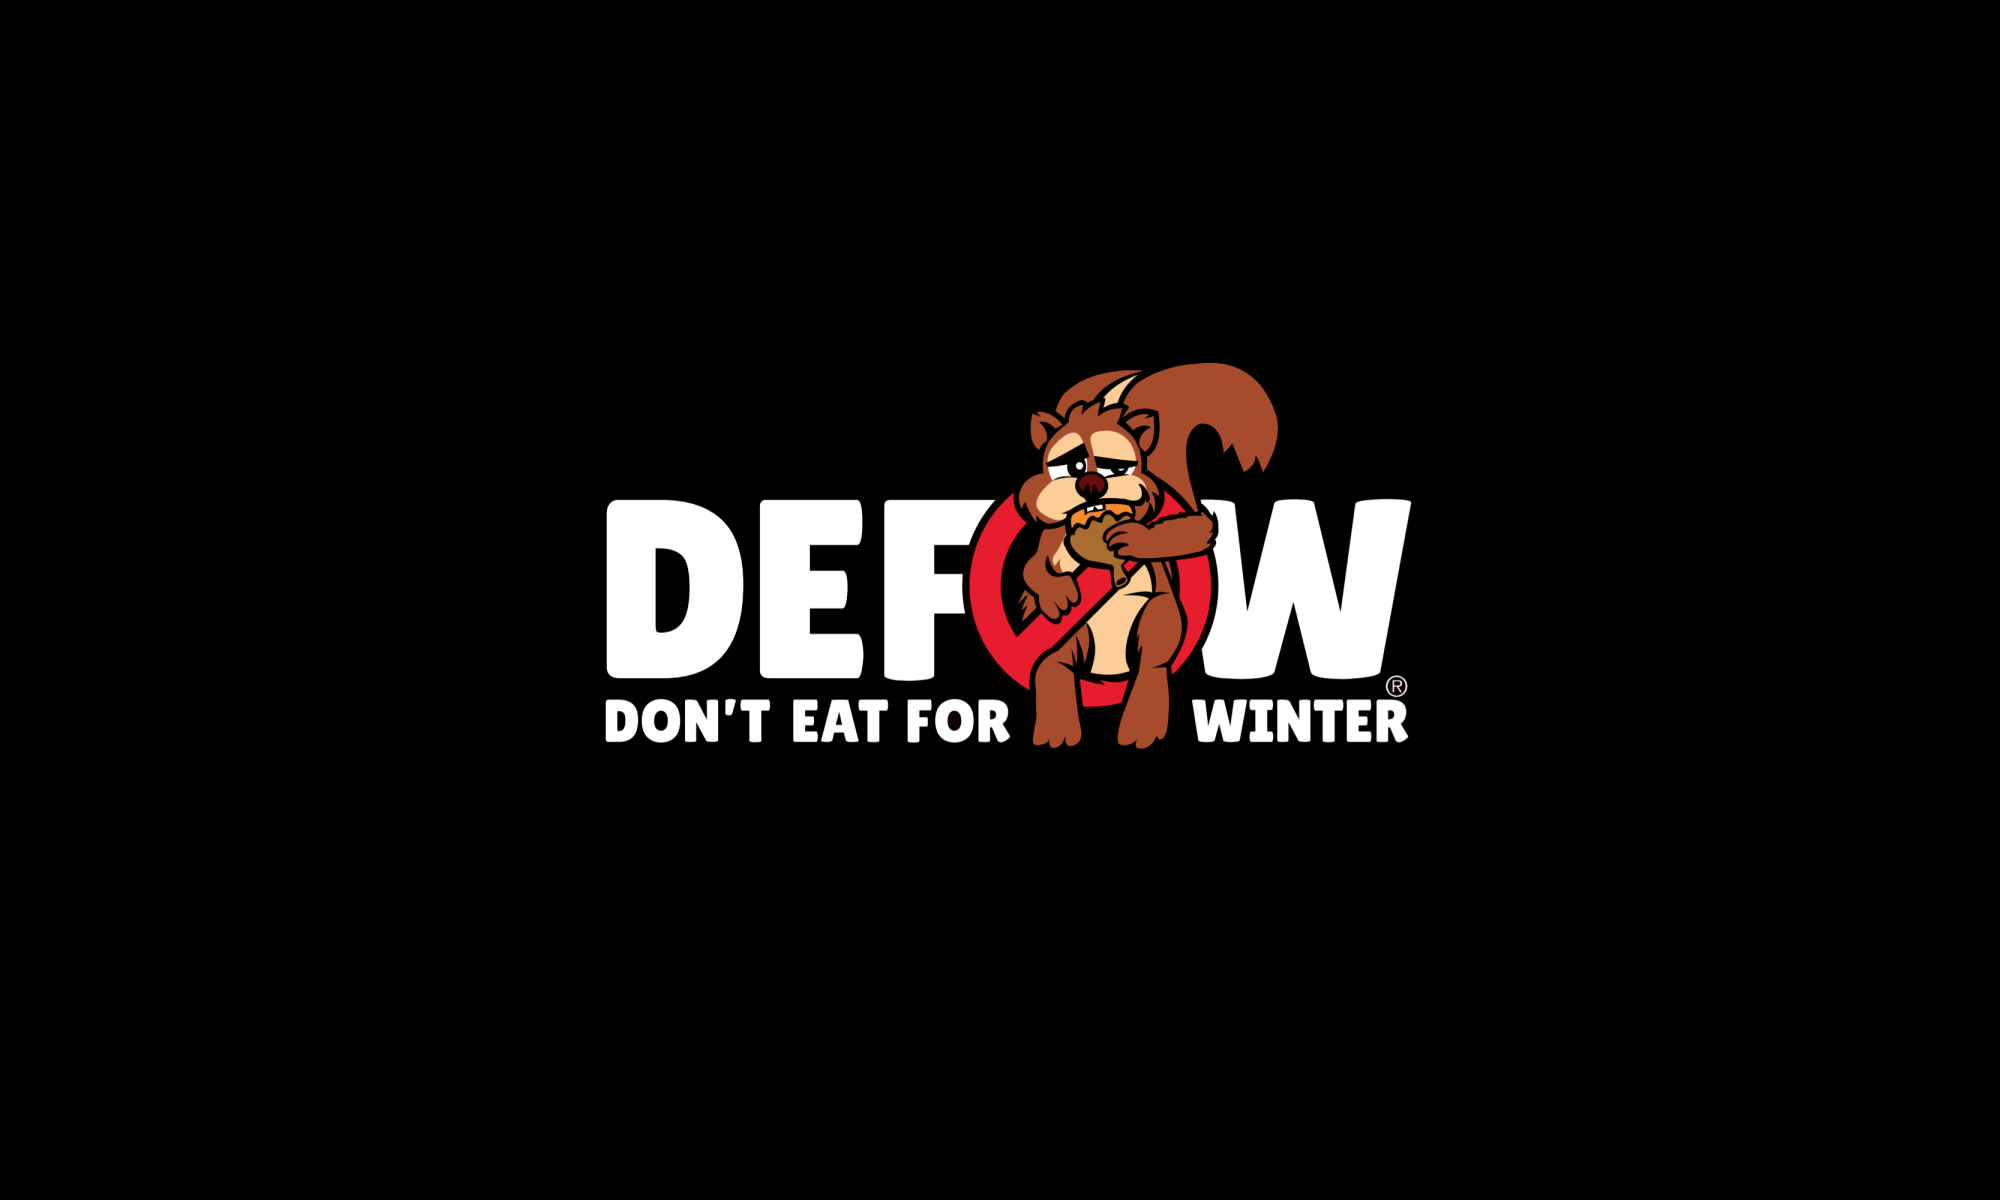 Don't Eat for Winter